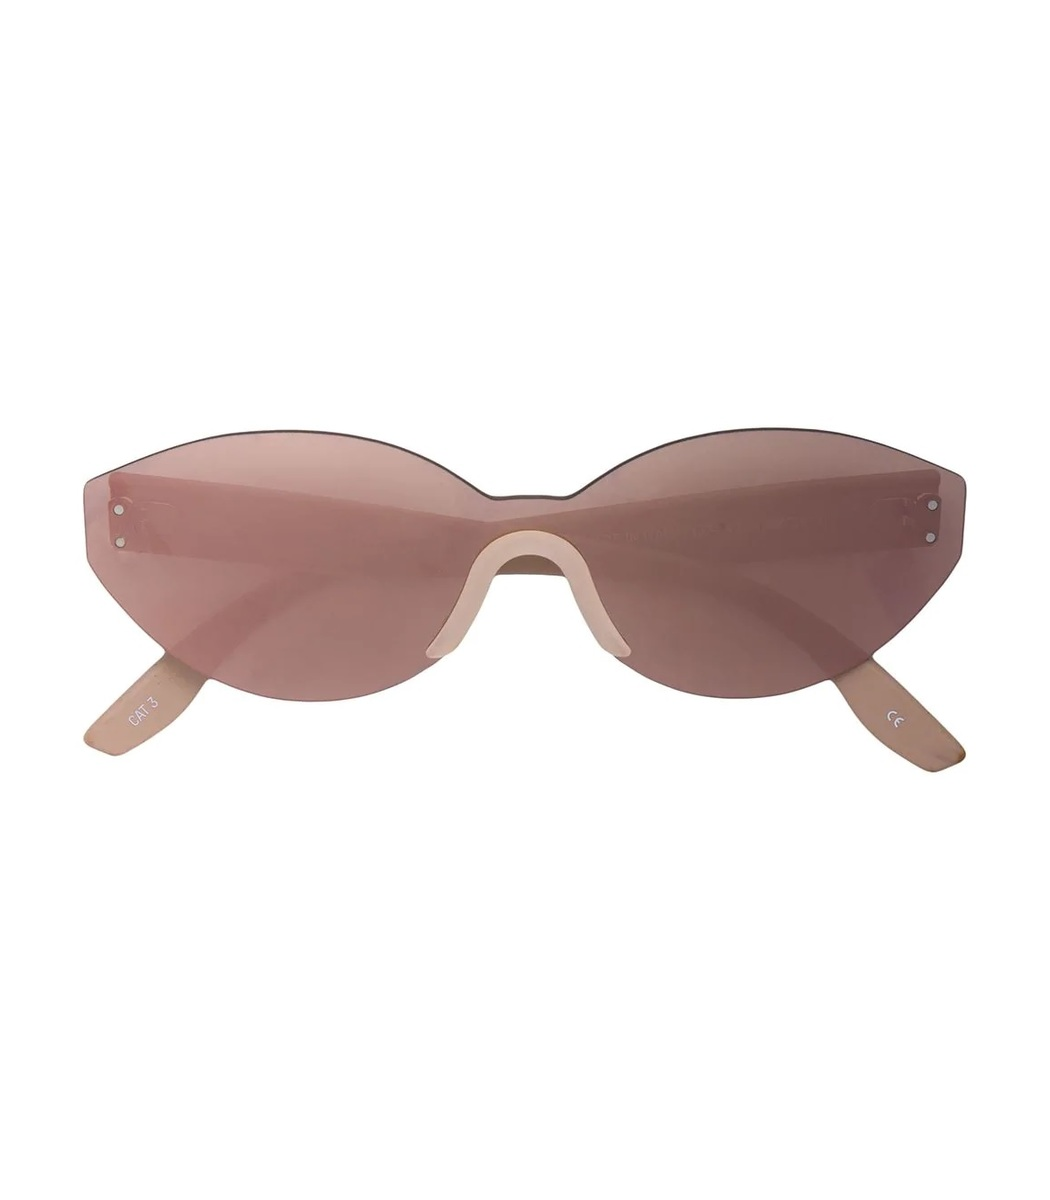 Yeezy Neutral Oval Sunglasses